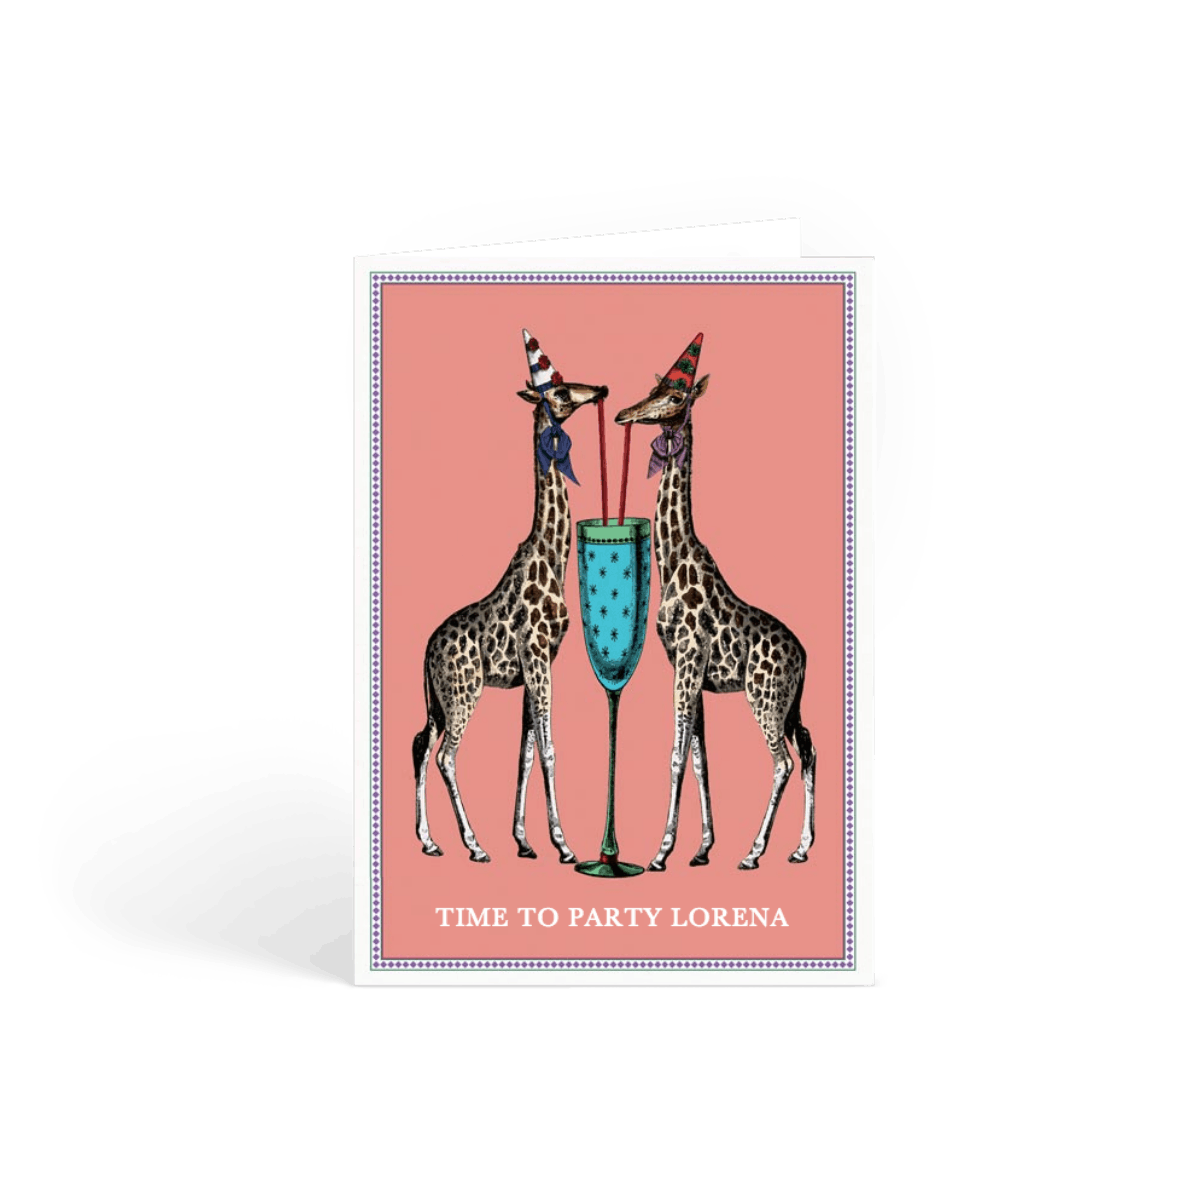 Https%3a%2f%2fwww.papier.com%2fproduct image%2f12985%2f2%2fparty giraffes 3275 avant 1542383981.png?ixlib=rb 1.1